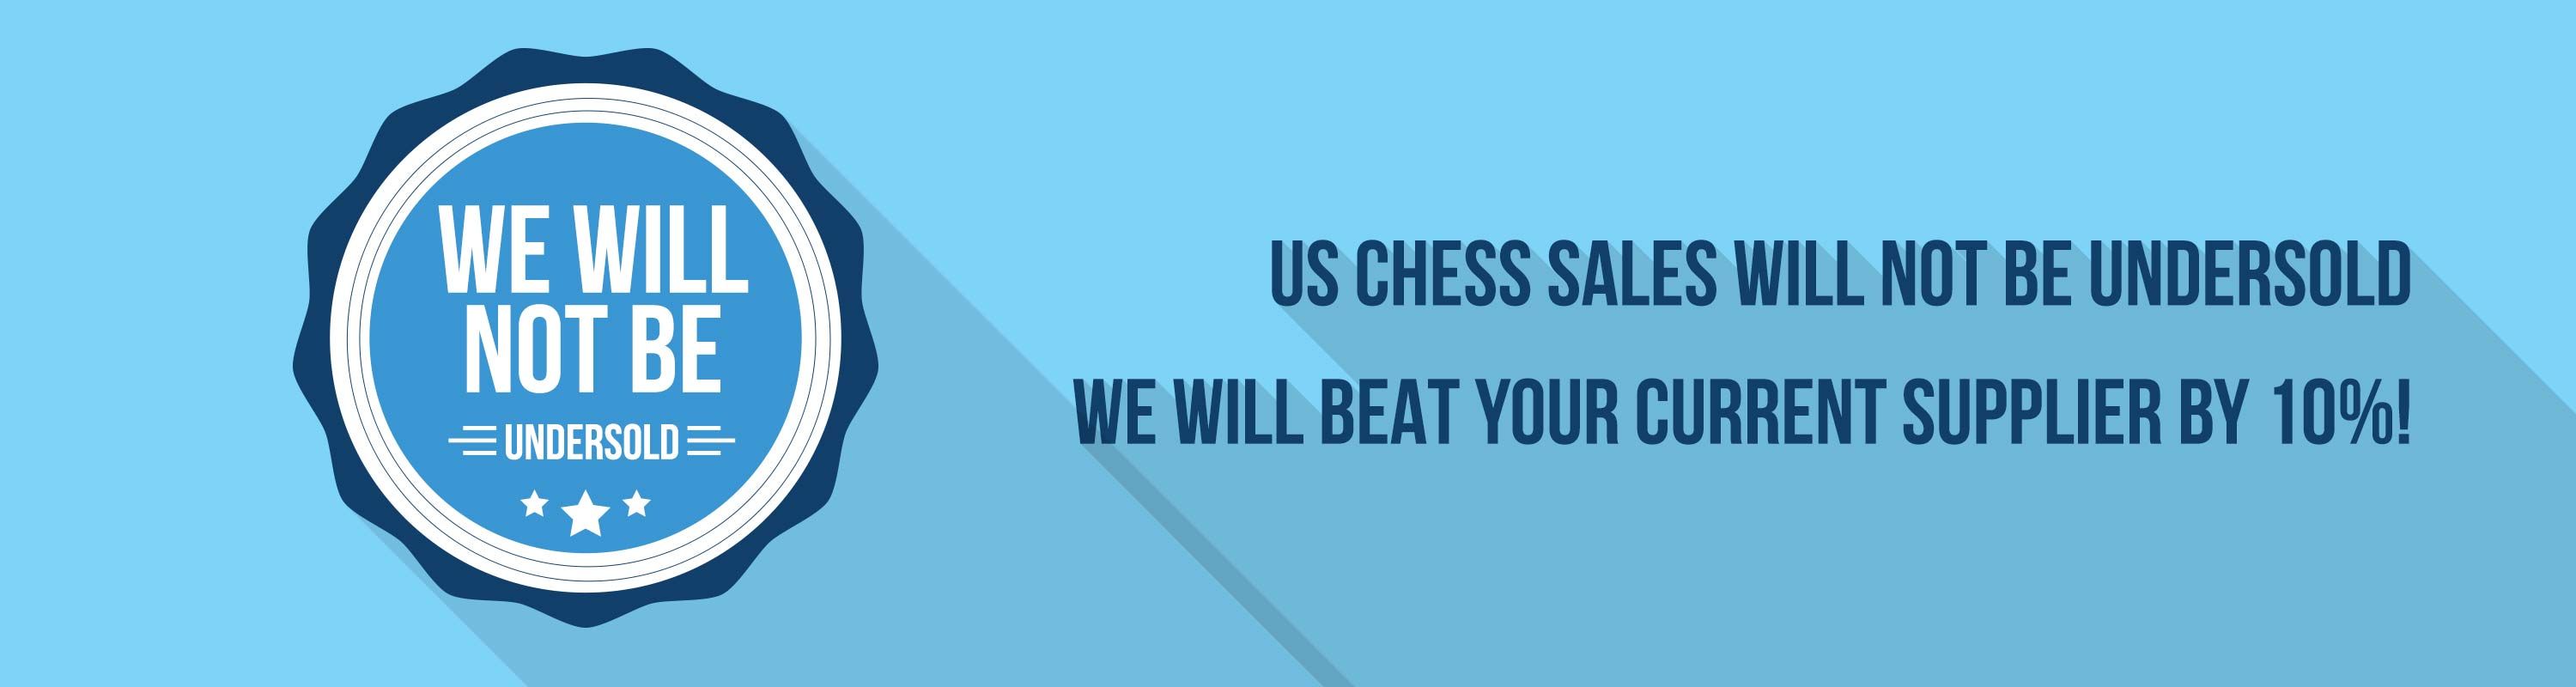 US Chess Sales will not be undersold! We will beat your current supplier by 10%